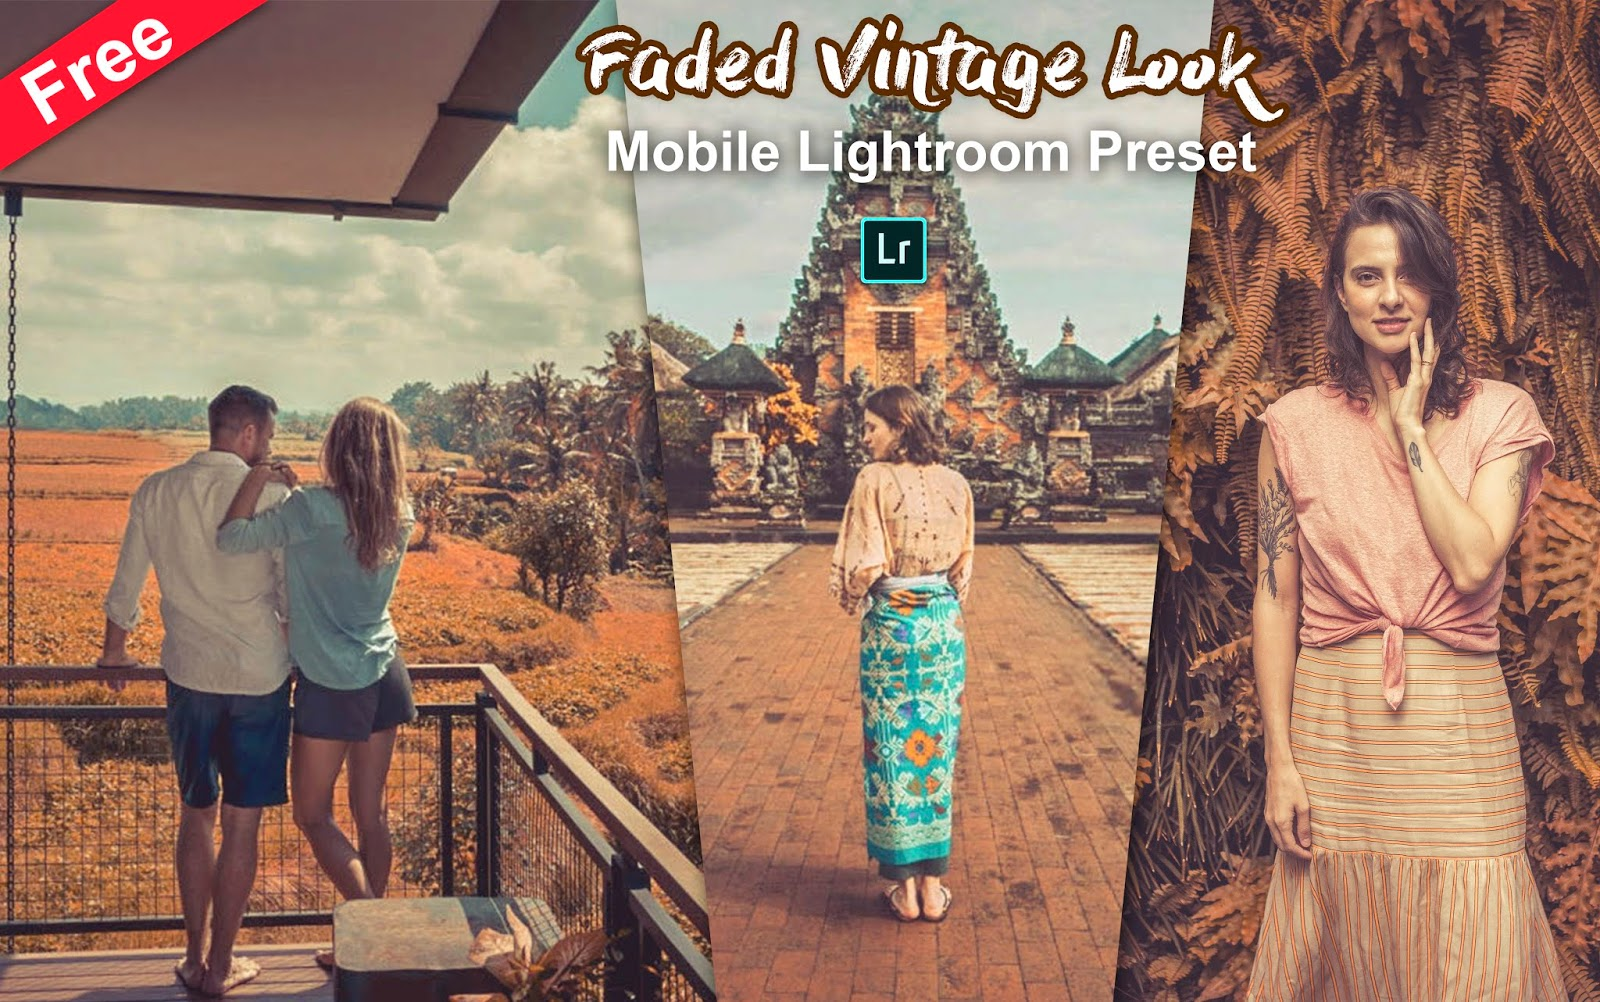 Download Faded Vintage Look Mobile Lightroom Preset for Free | How to Edit Your Photos Like Faded Vintage Look in Mobile Lightroom App